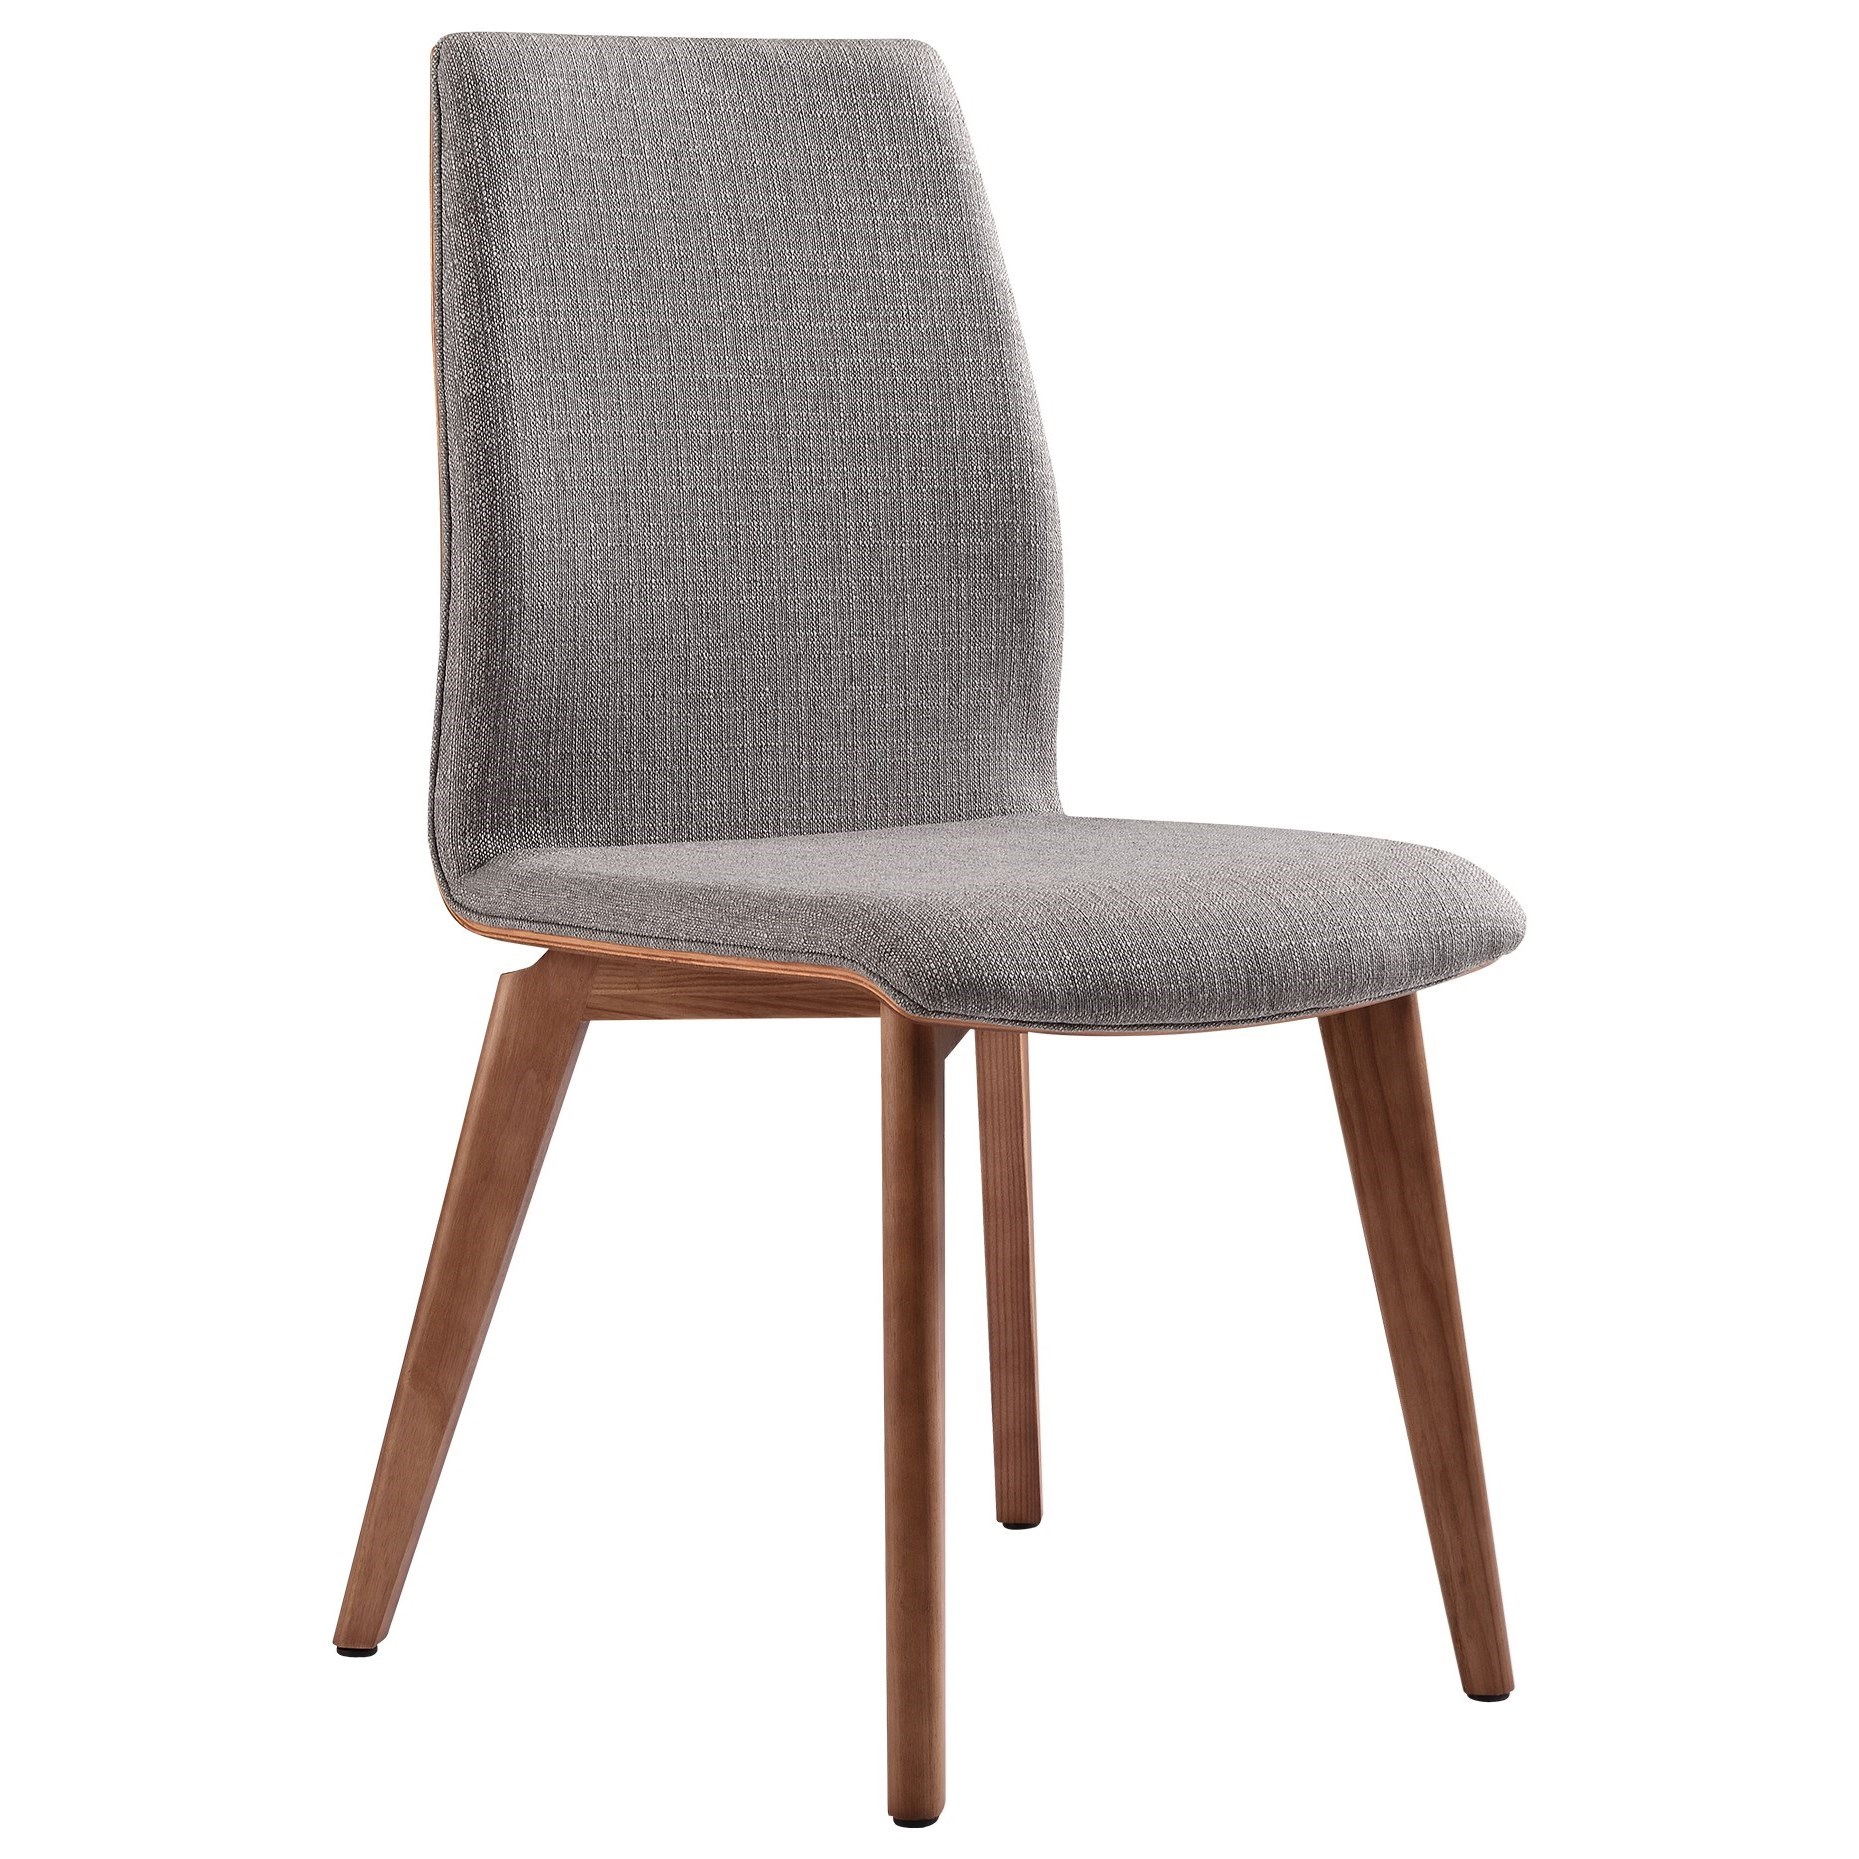 Archie Mid-Century Dining Chairs - Set of 2 by Armen Living at Fisher Home Furnishings